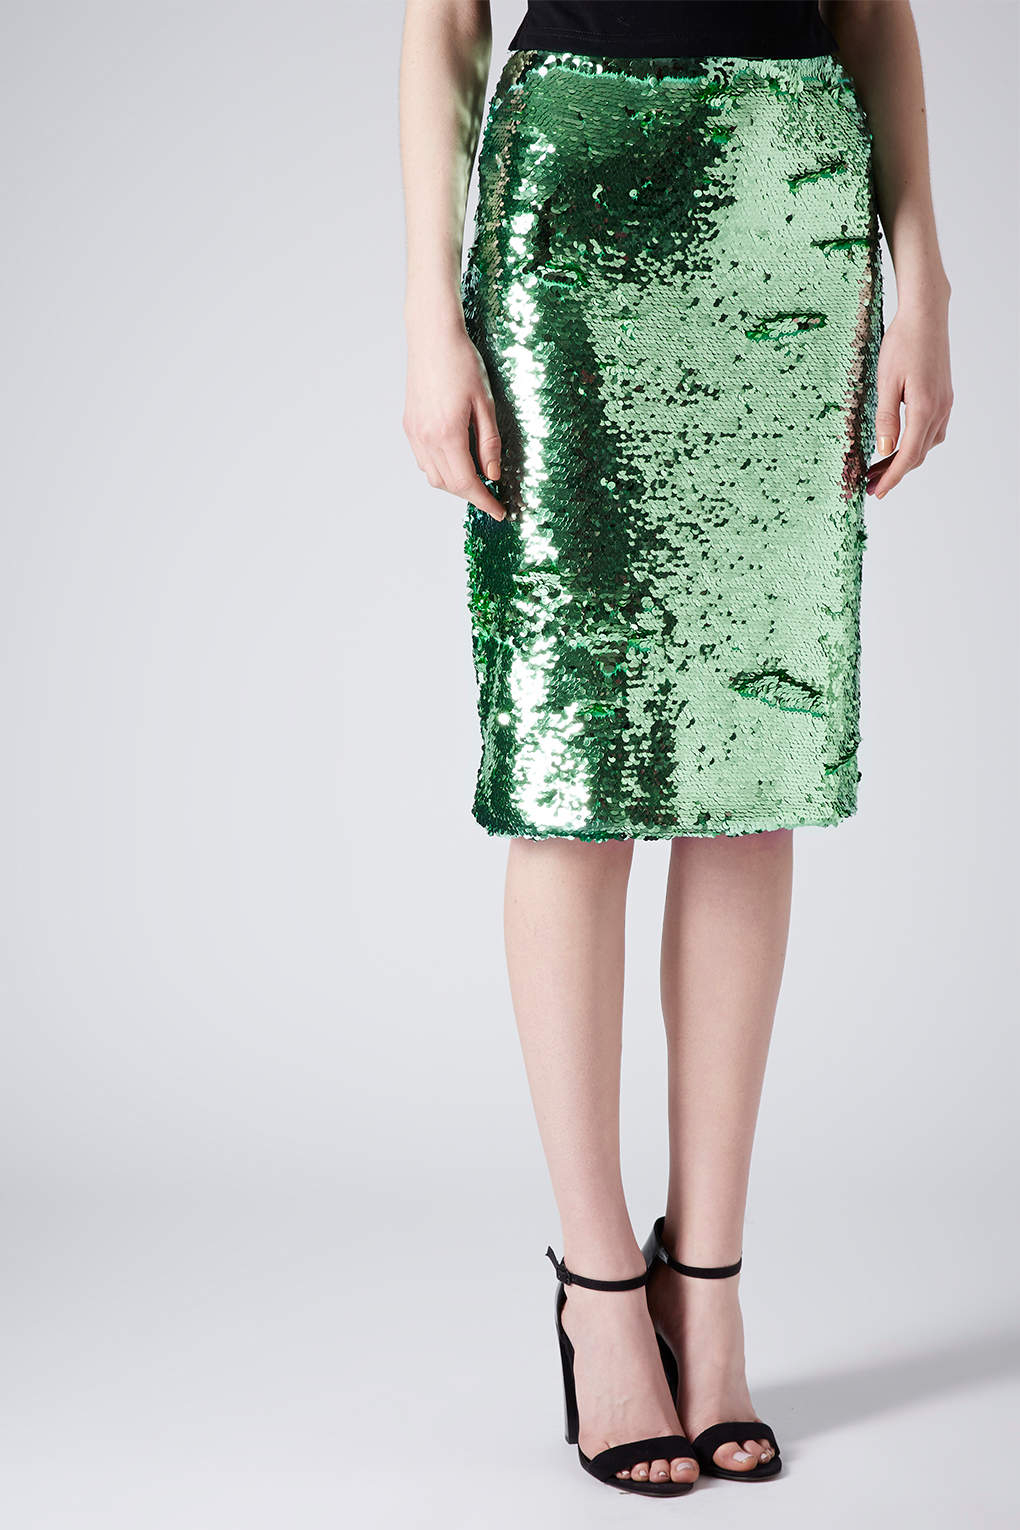 Green glitter pencil skirt – Modern skirts blog for you